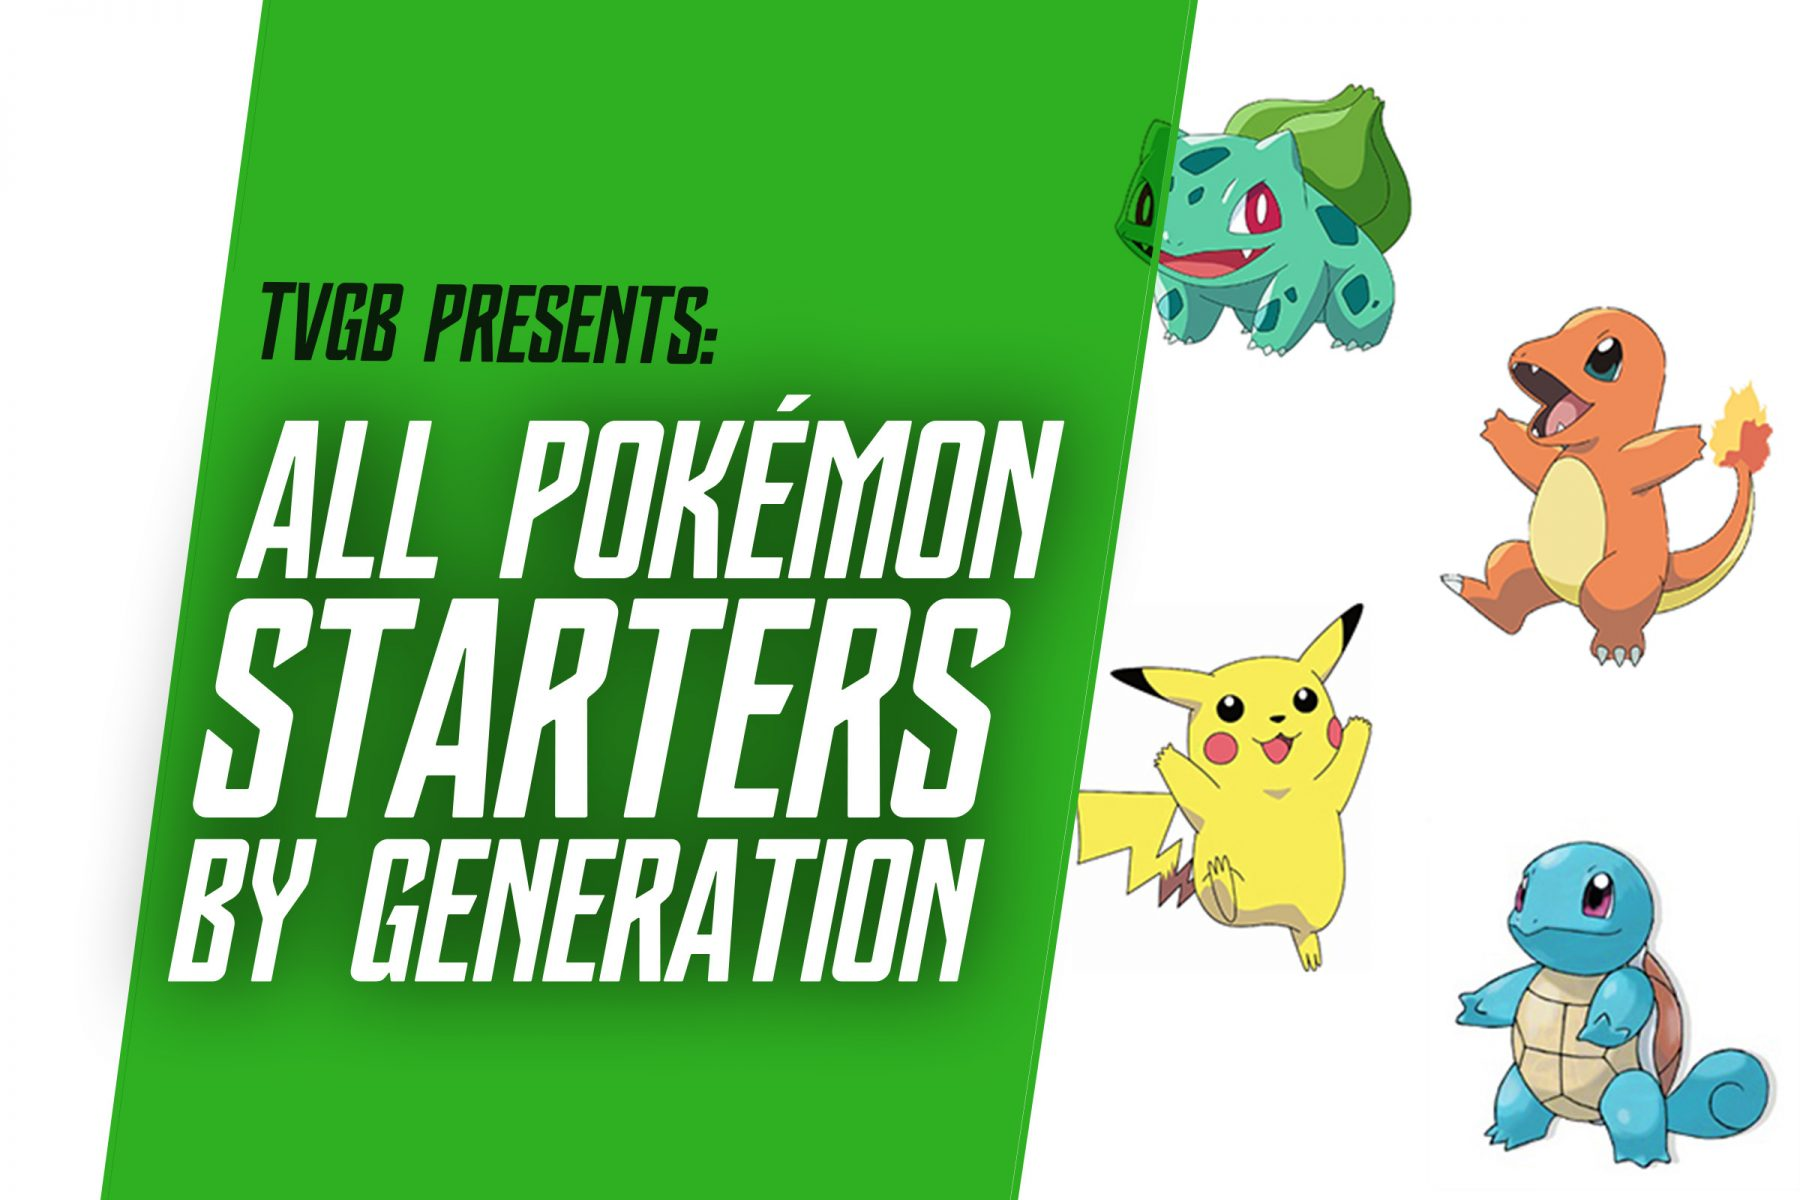 TVGB - all pokemon starters by generation, header image featuring Squirtle, Bulbasaur, Charmander, and Pikachu